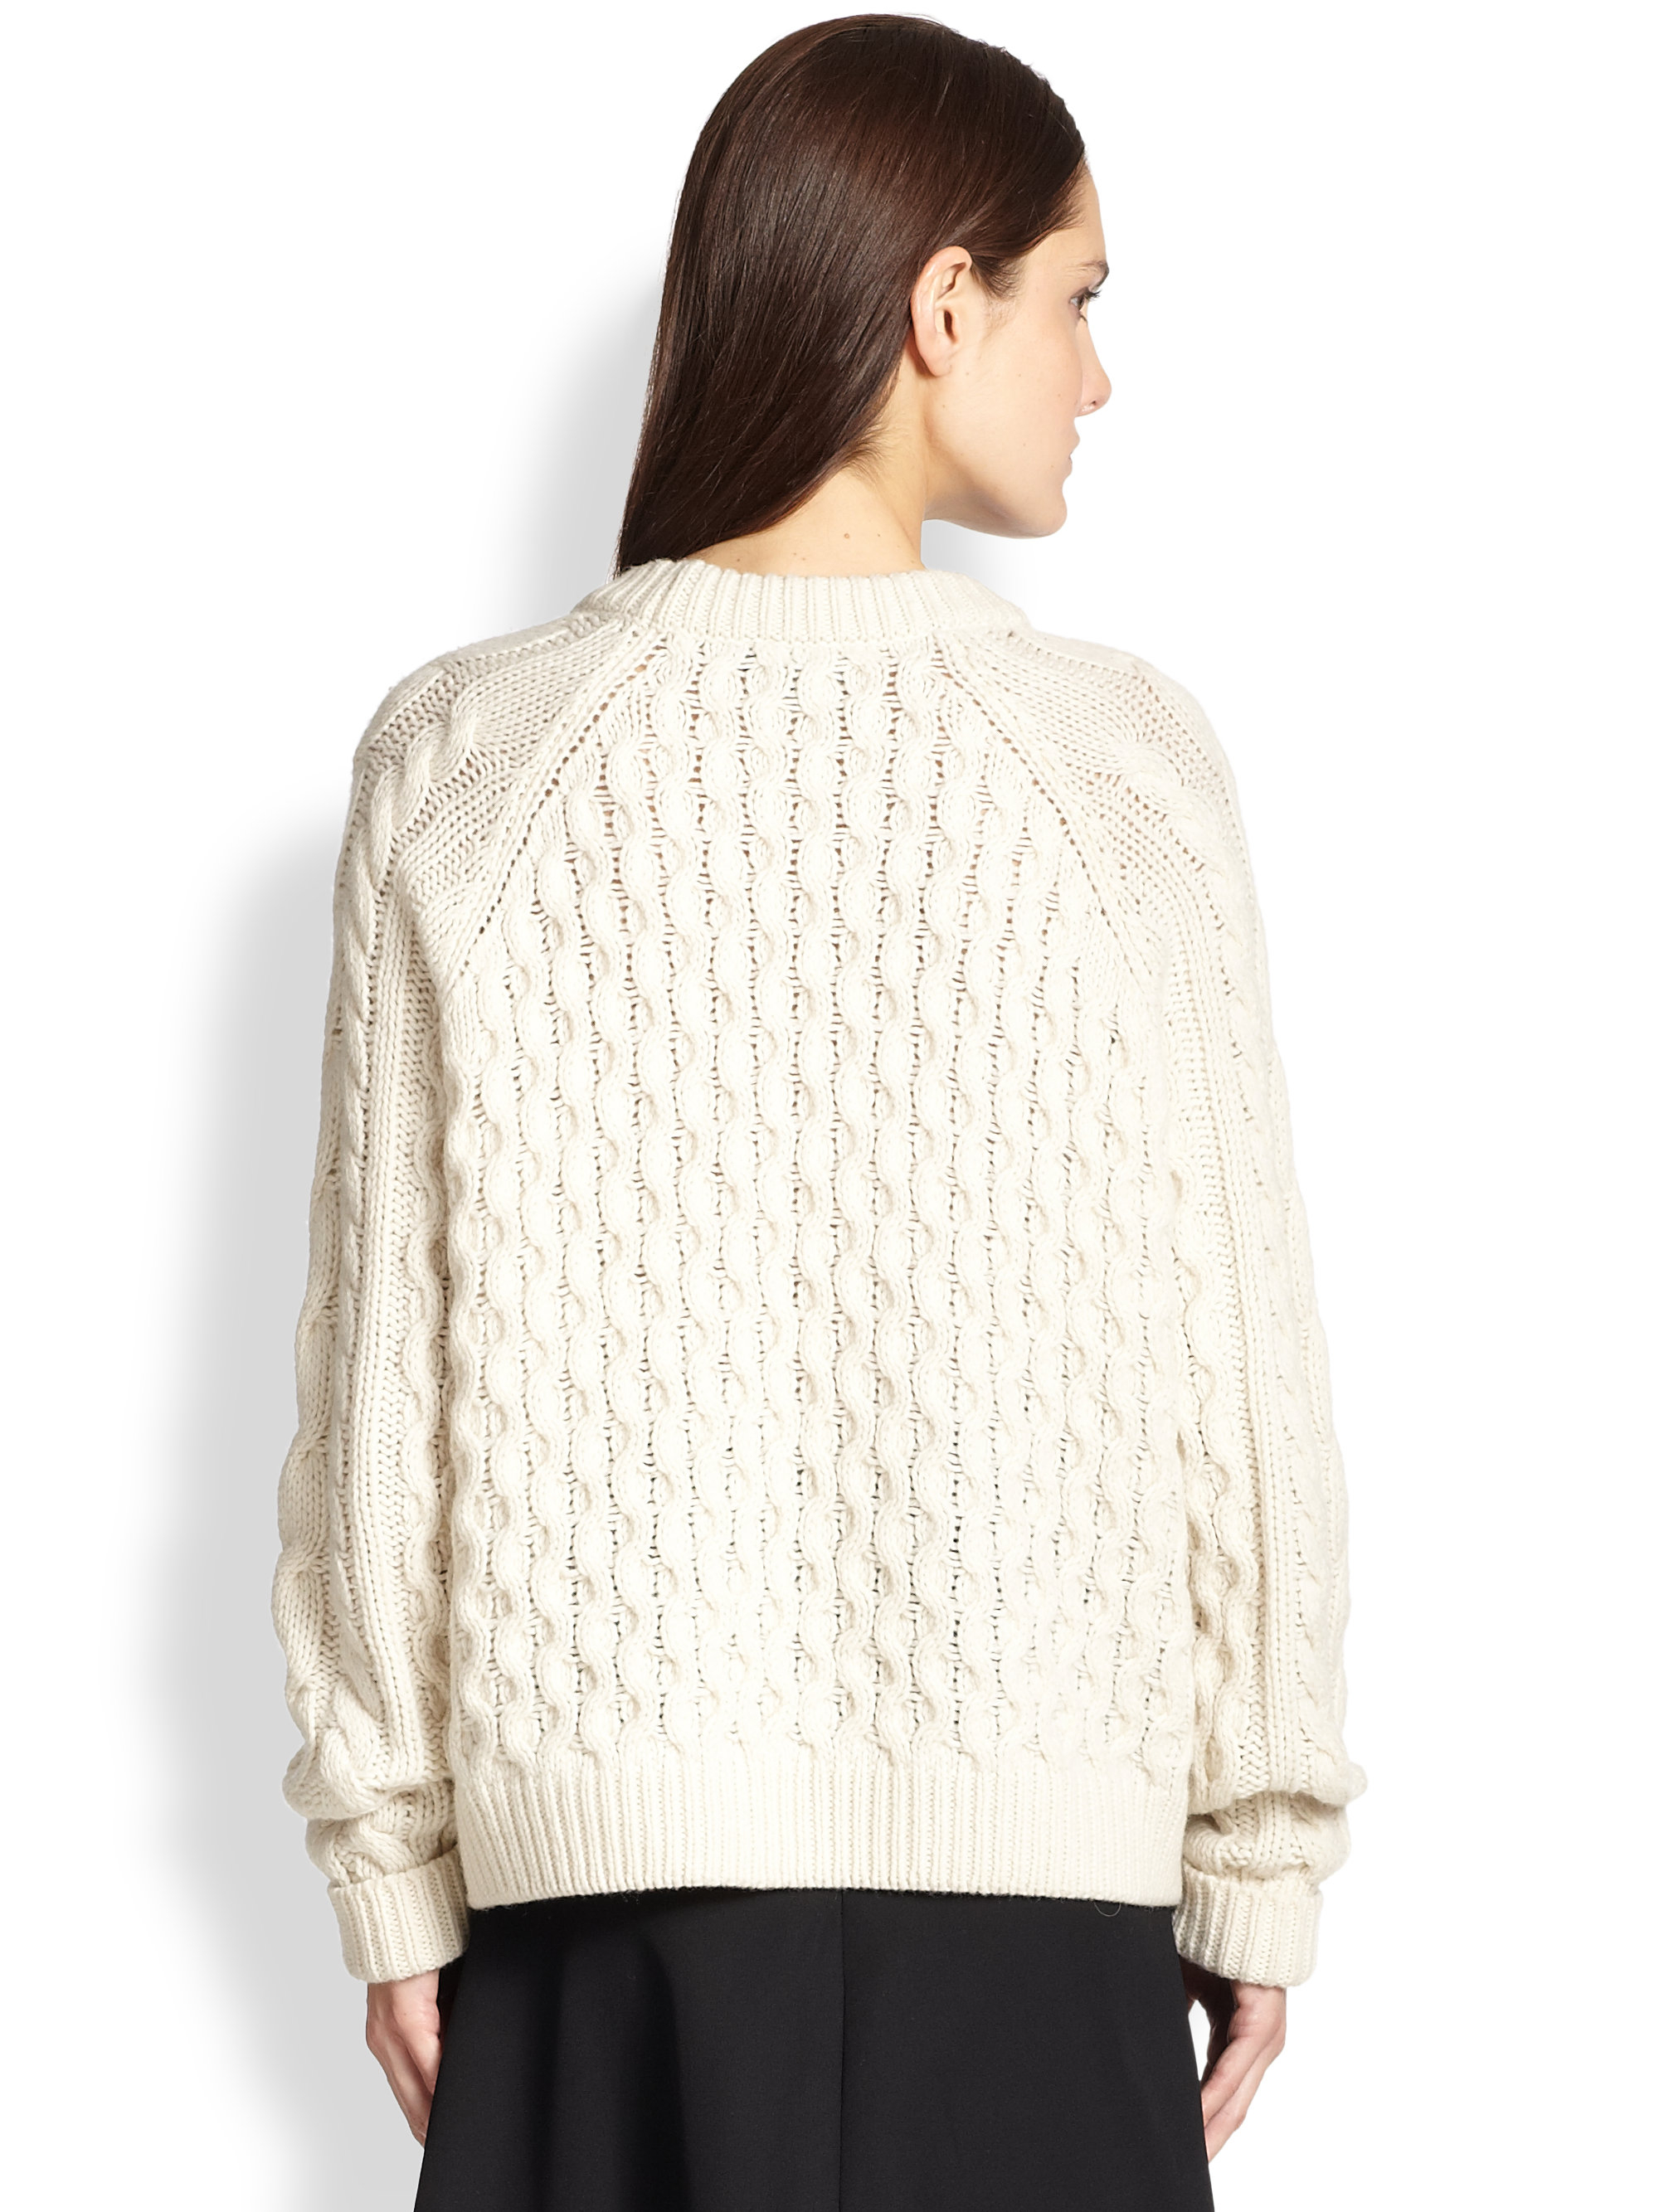 8ddb9a235f9 Gallery. Previously sold at  Saks Fifth Avenue · Women s Cable Knit Sweaters